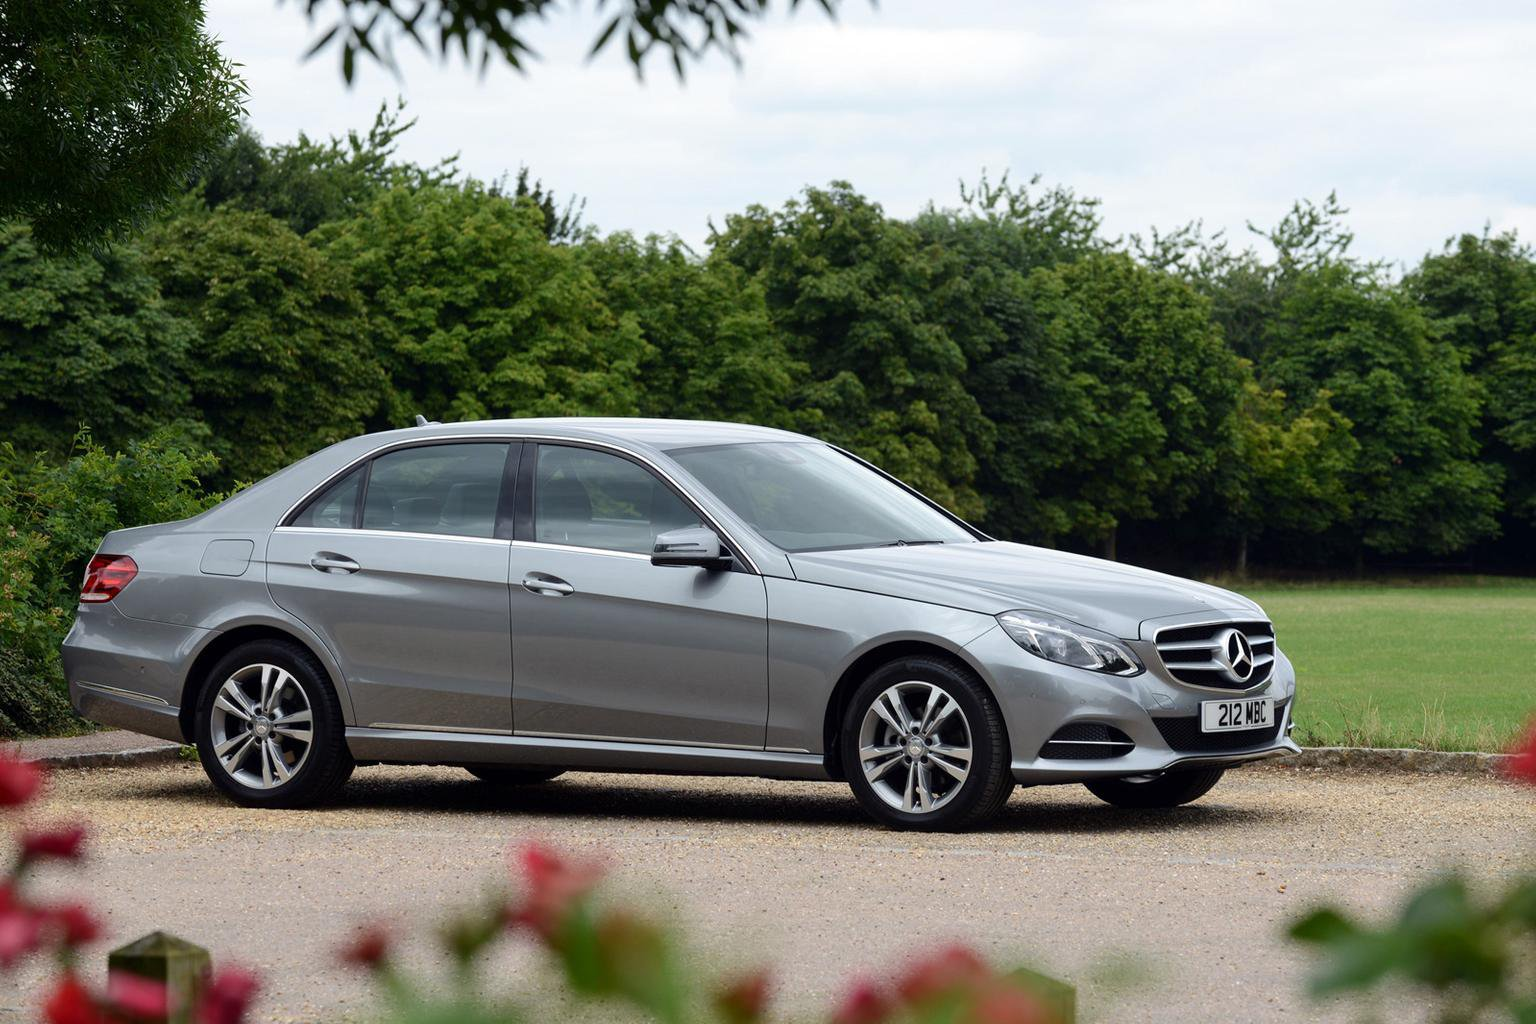 News round-up: Mercedes S-Class Coupe pricing, new E-Class gearbox and Range Rover SVR